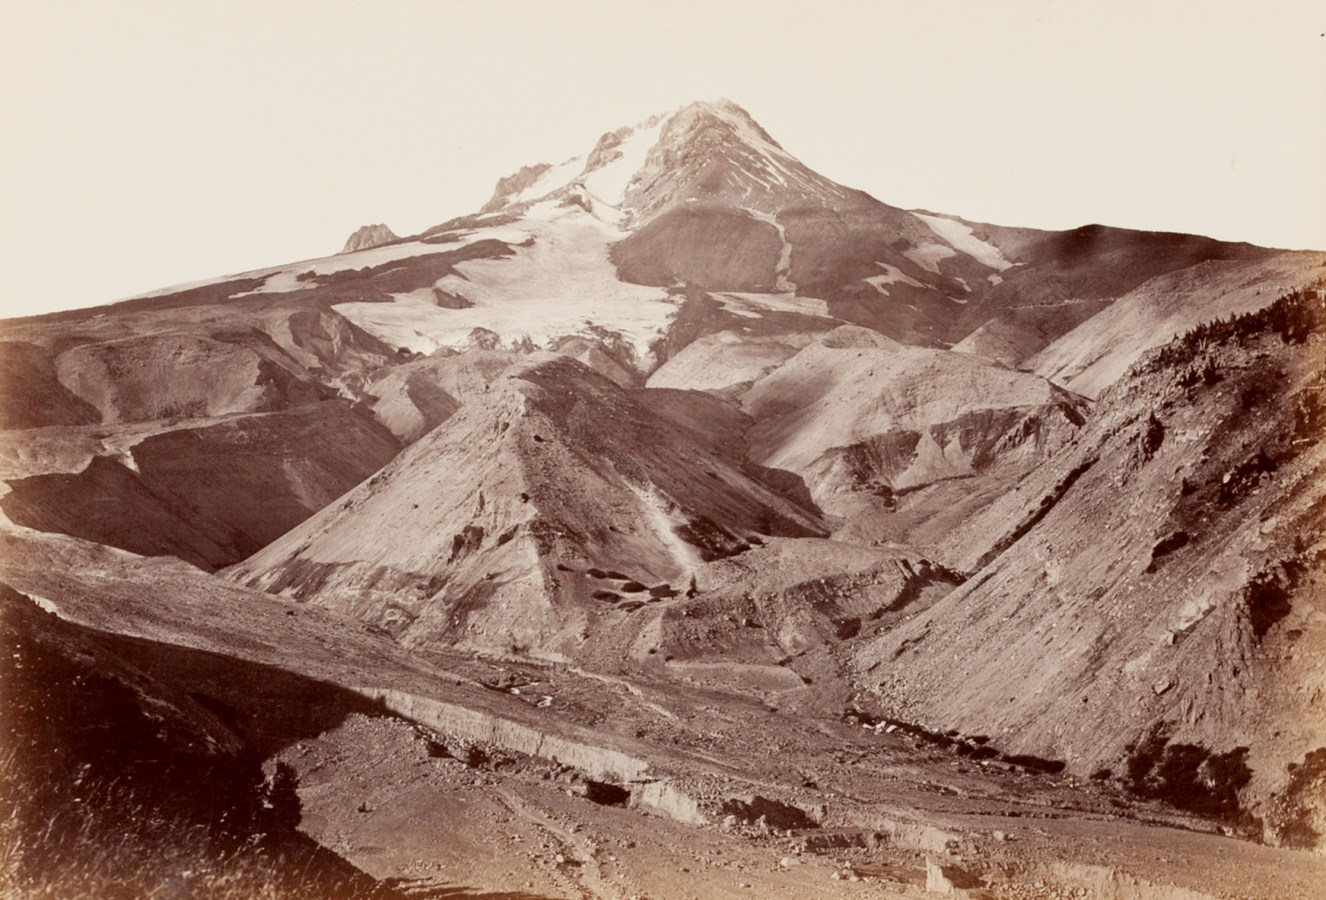 Ninteteenth century photograph of a snow-covered mountain top